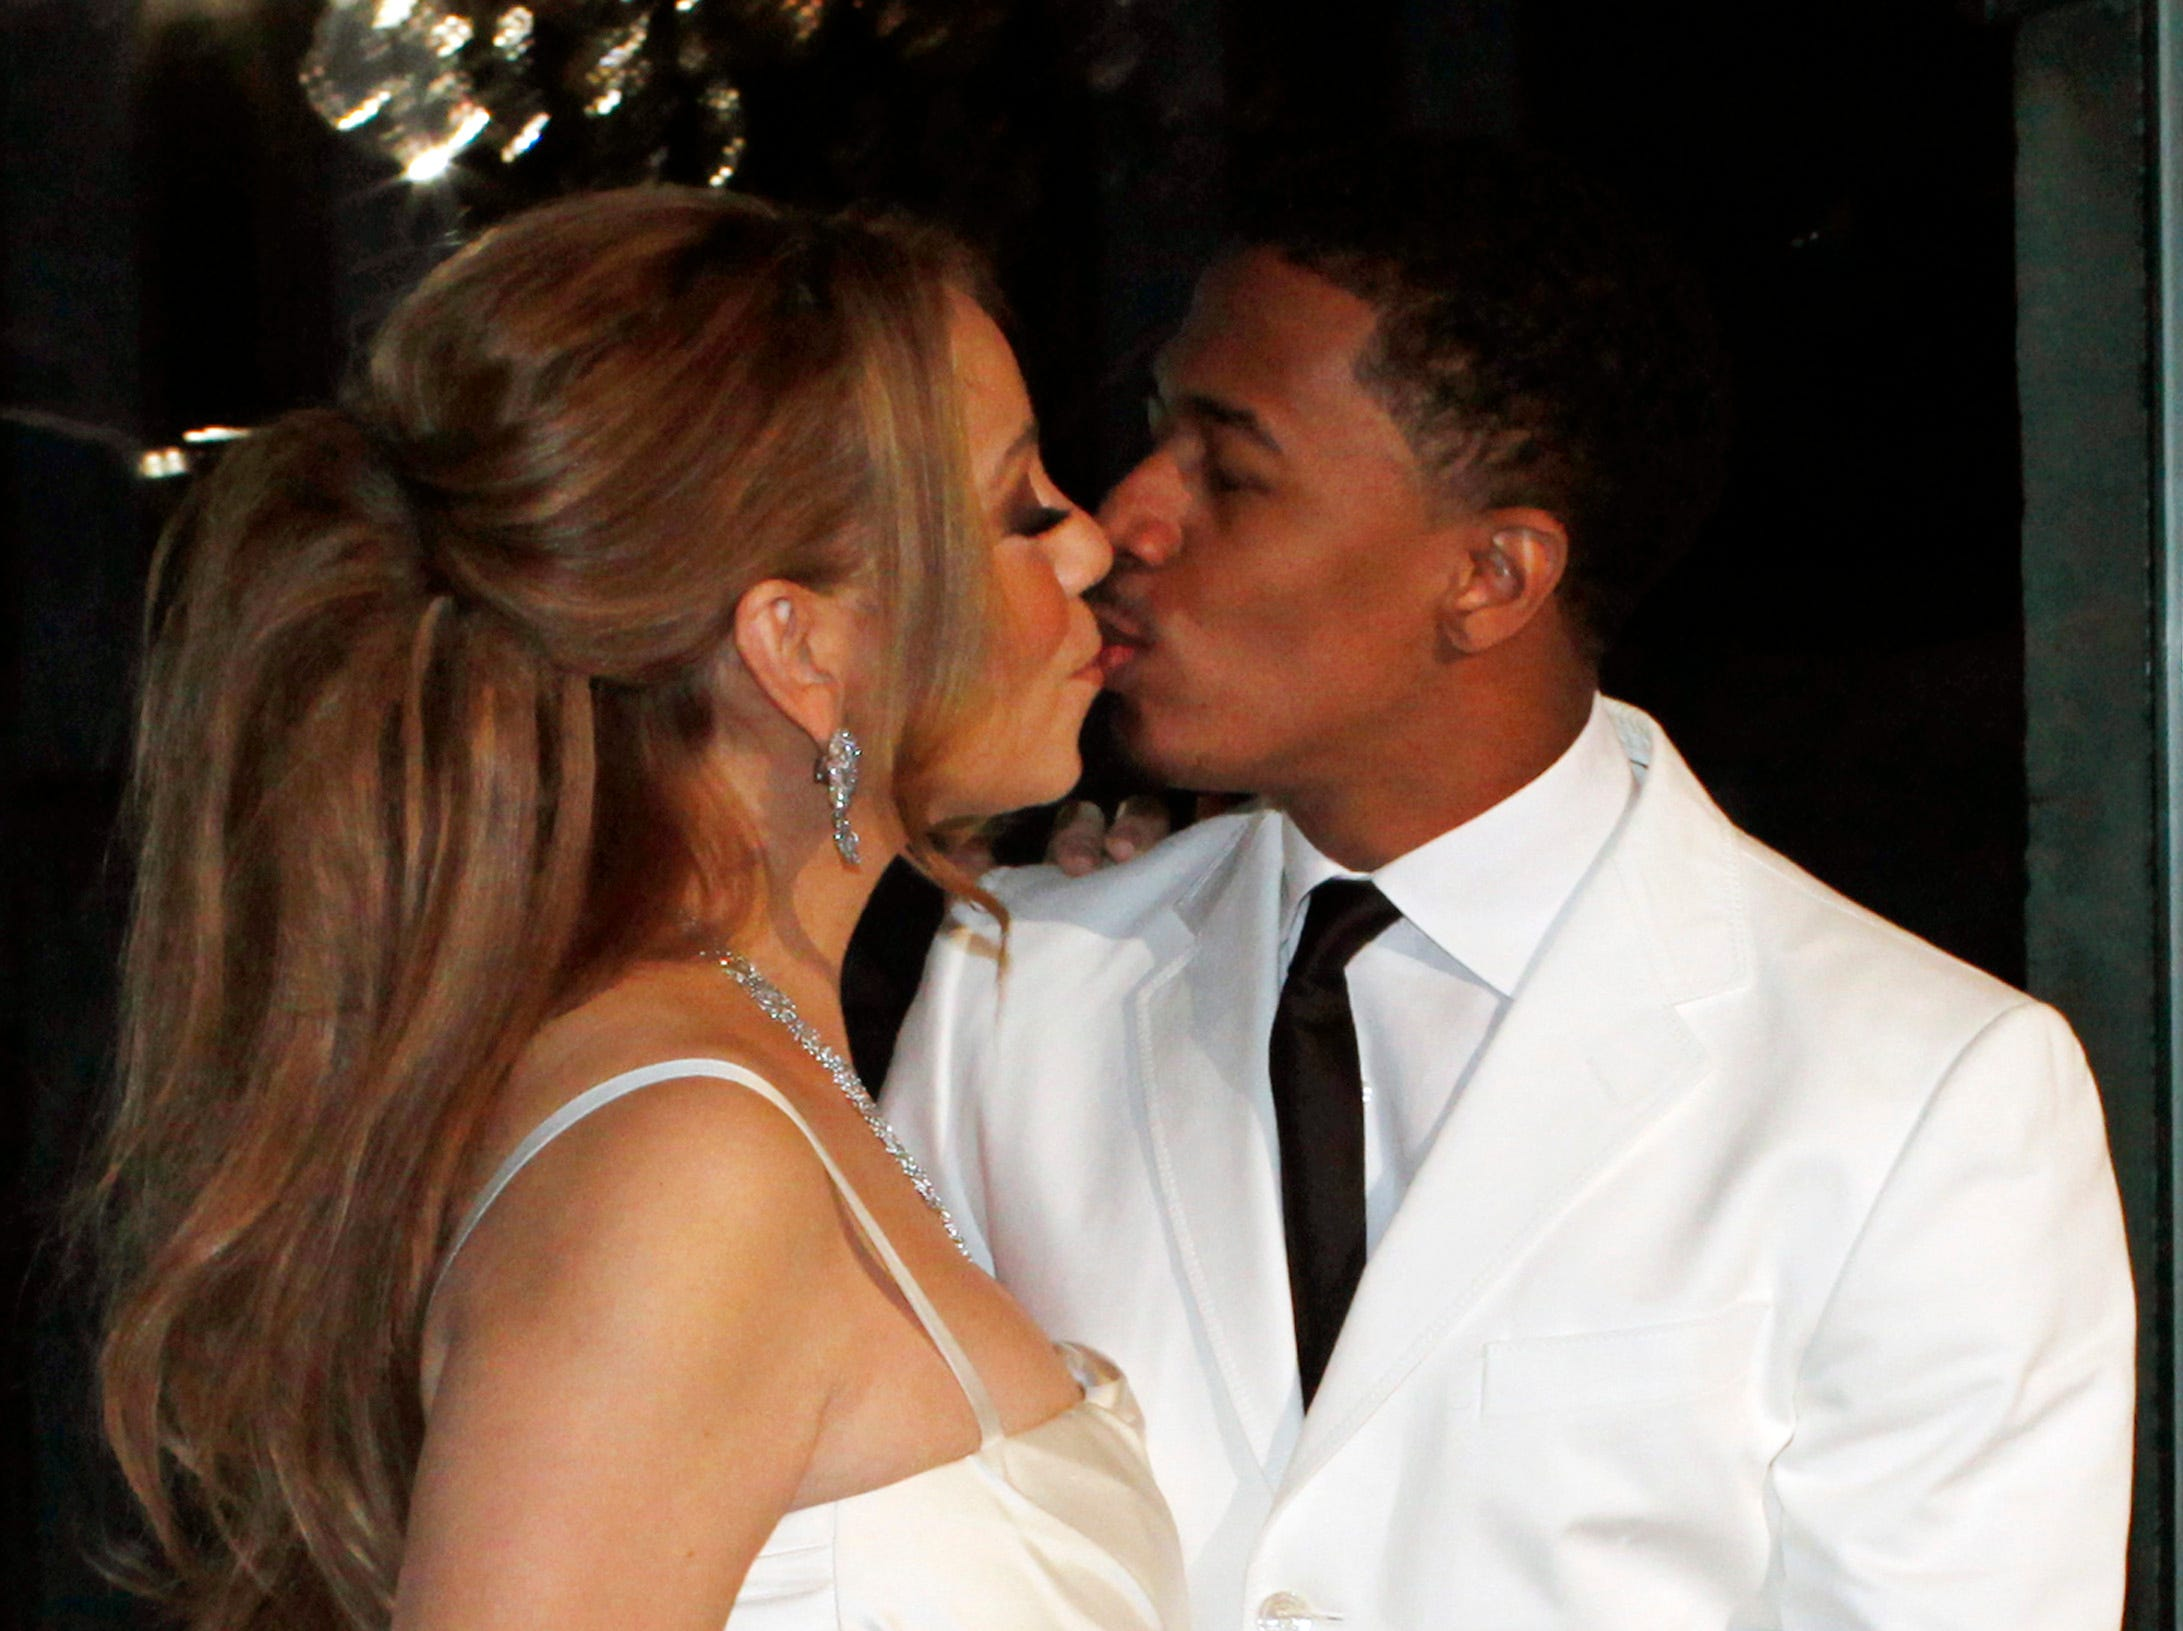 ORG XMIT: XTC101 U.S singer Mariah Carey, left, kisses her husband Nick Cannon as they pose in Paris, for the renewal of their wedding vows, Friday, April 27, 2012. (AP Photo/Thibault Camus)